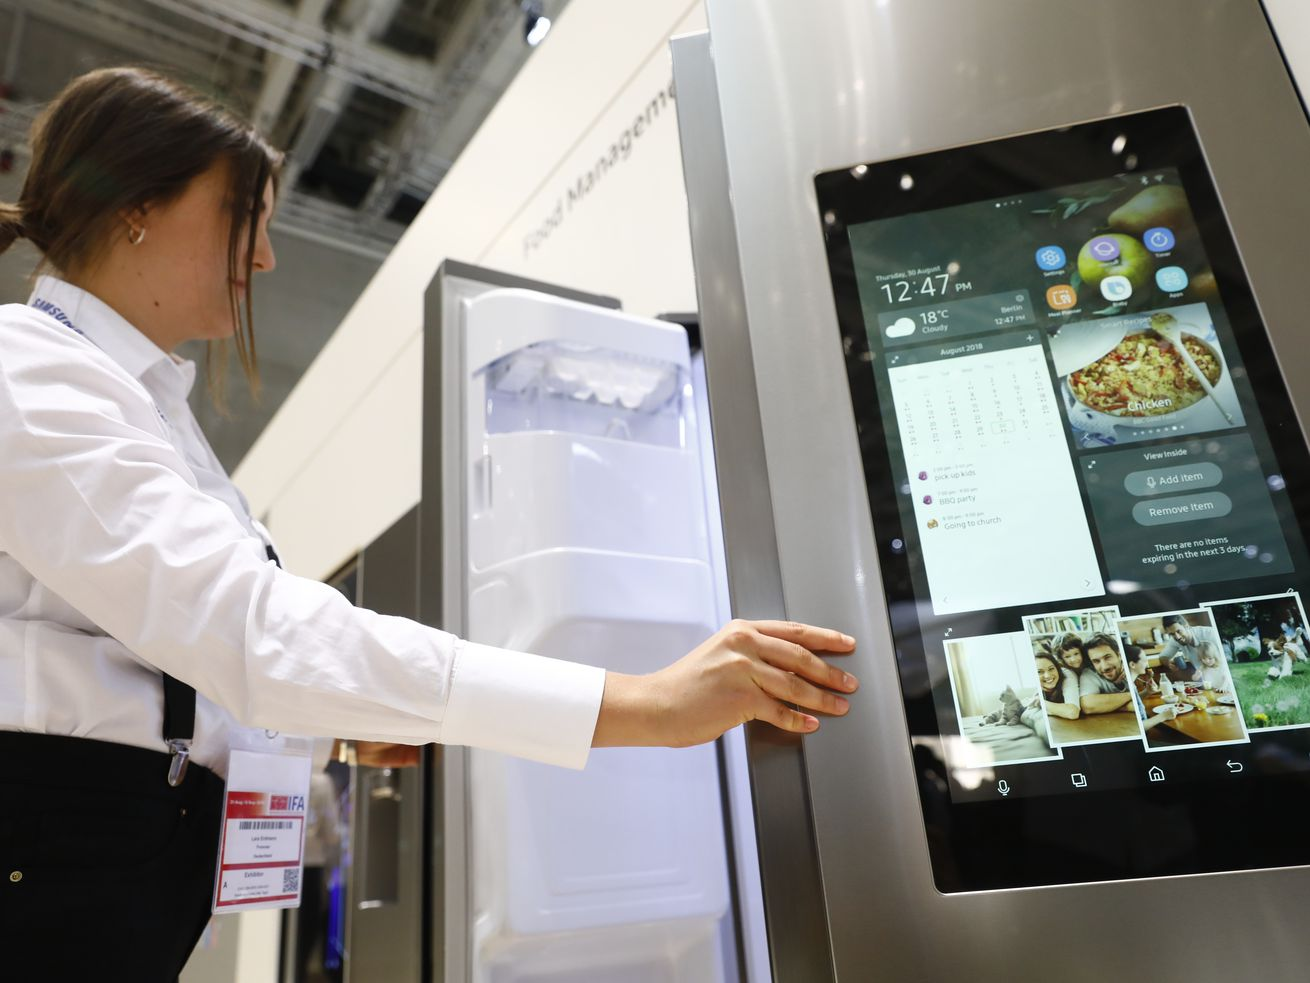 Would you trust a smart fridge? What if it's really, really convenient?